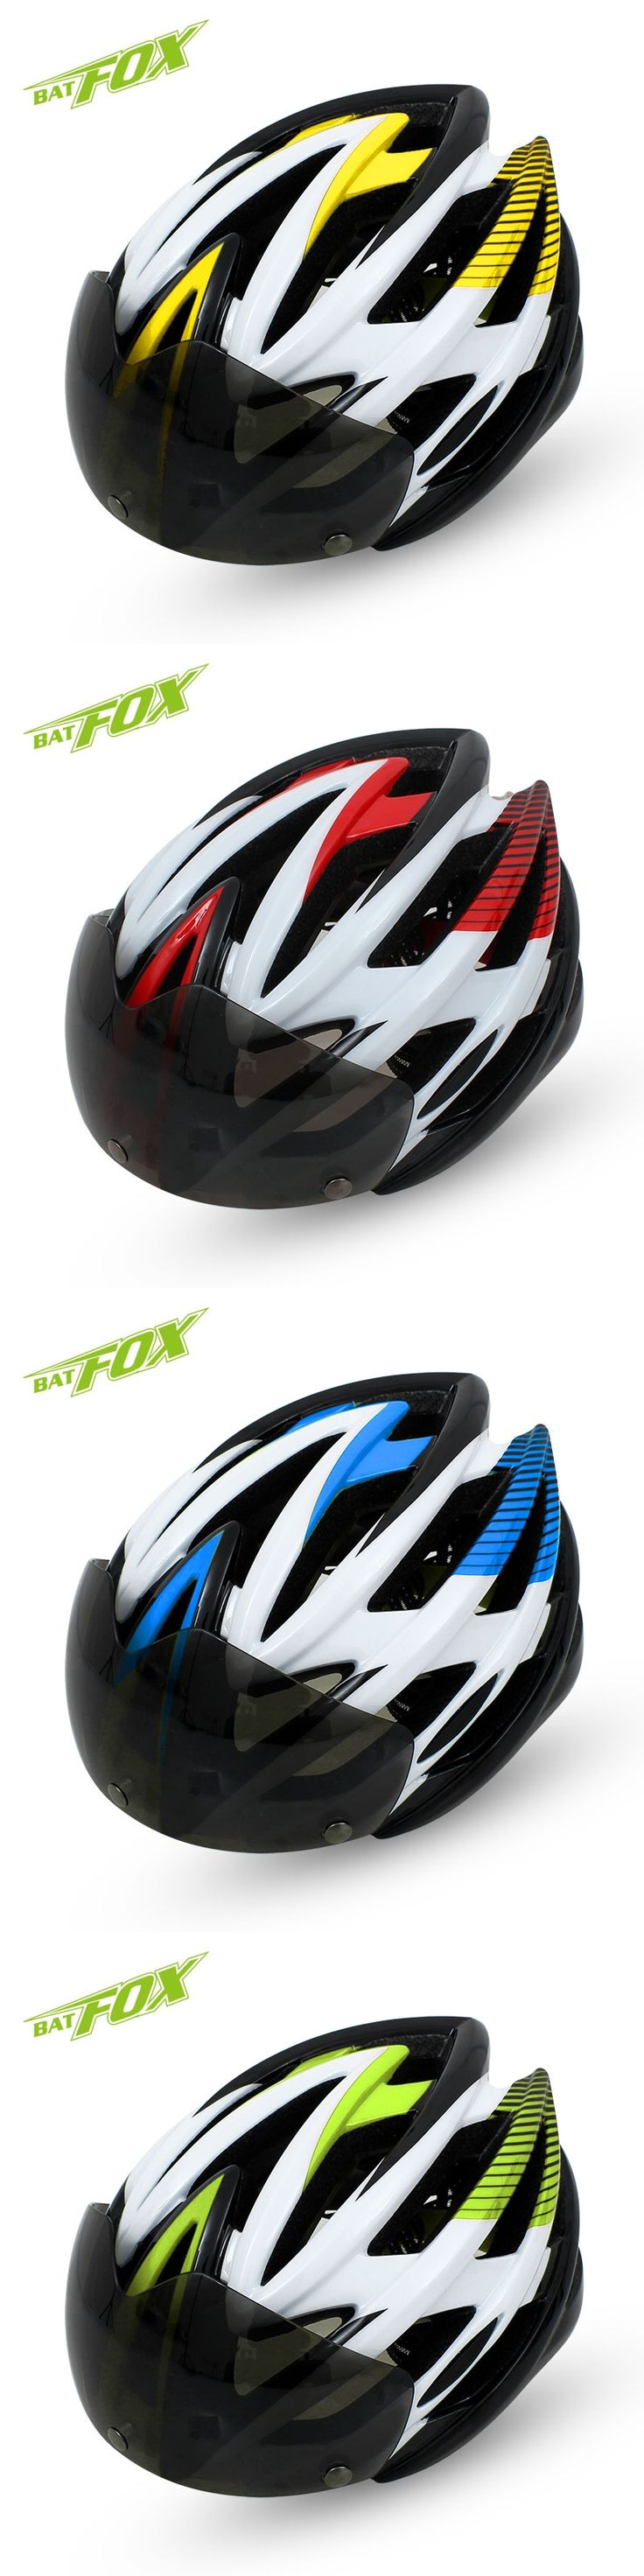 2017 New Road Bicycle Helmet MTB Helmet Casque Velo Integrally-Molded BMX Cycling Mens Downhill Road Bike Helmets With Glasses